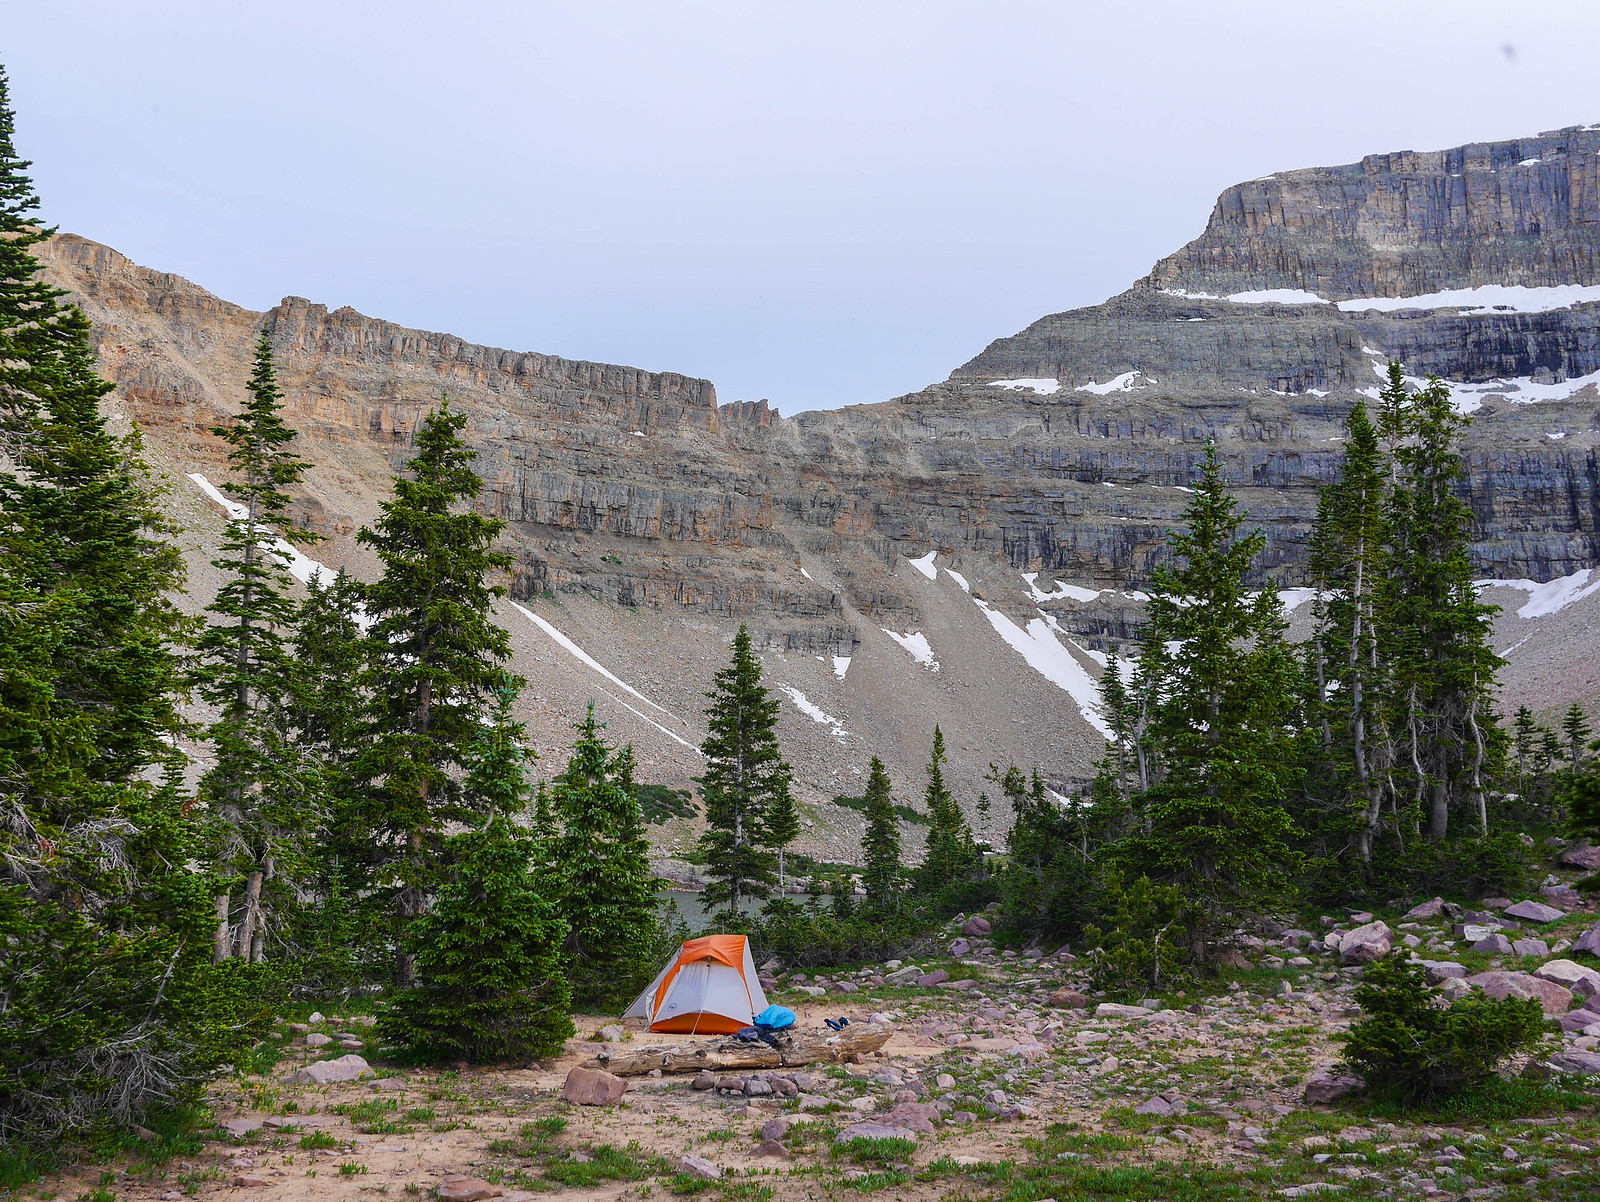 Camp at Amethyst Lake